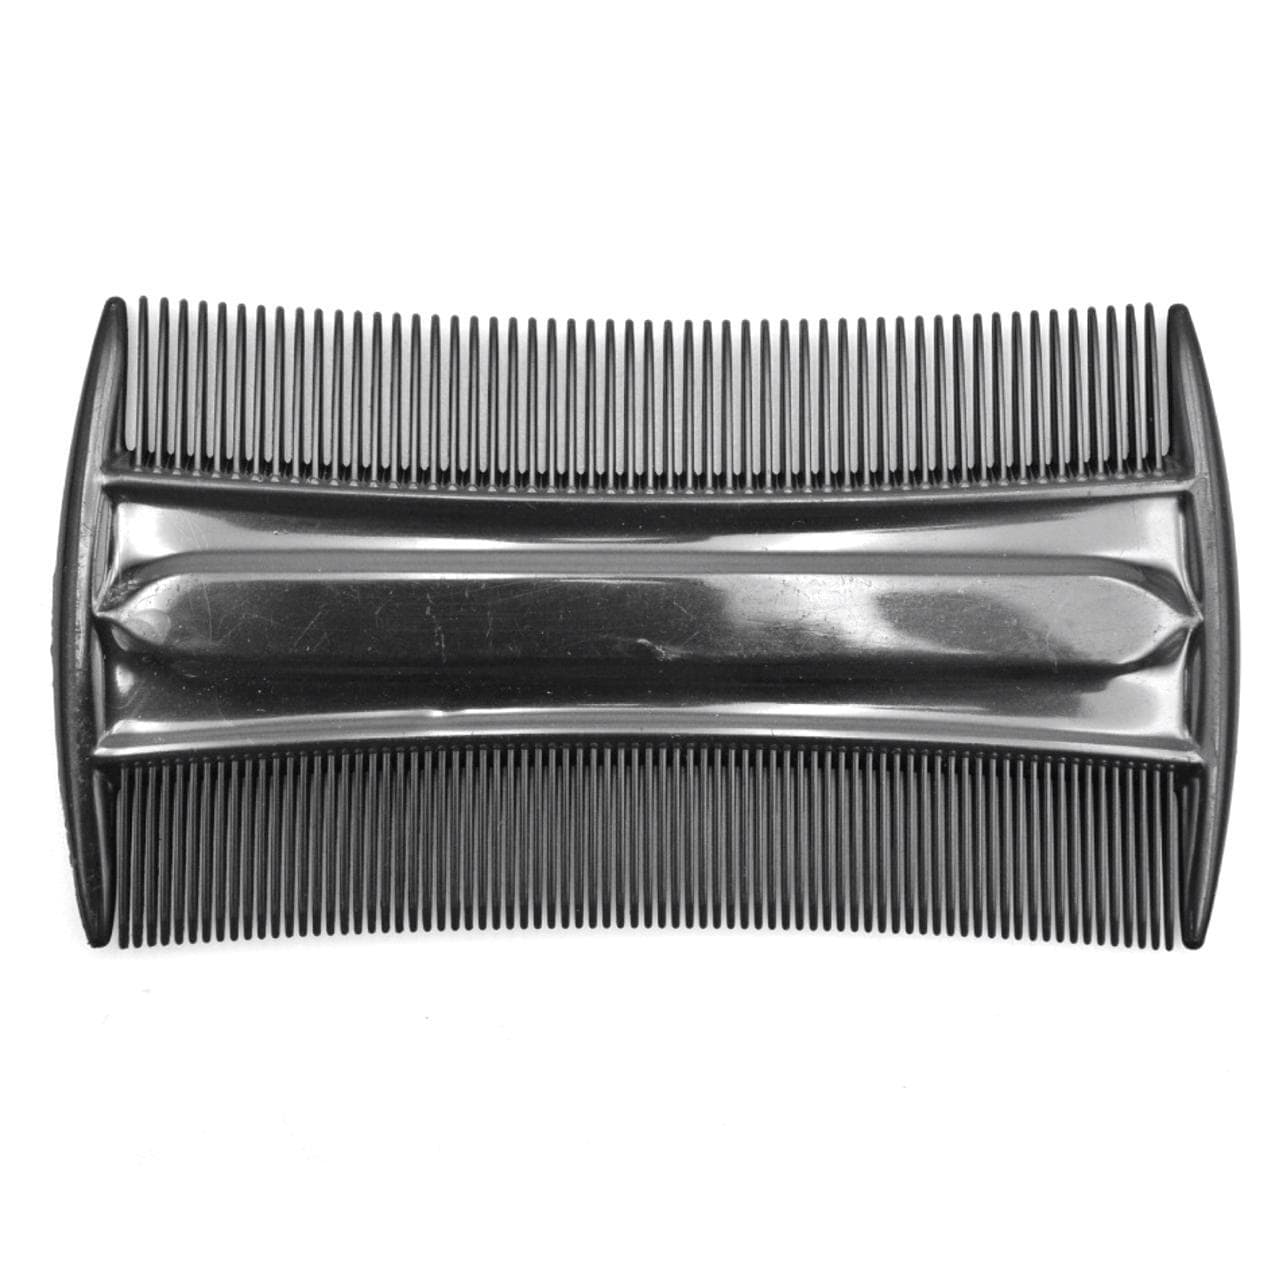 Globalstar Detection/Lice Hair Comb ABS13939